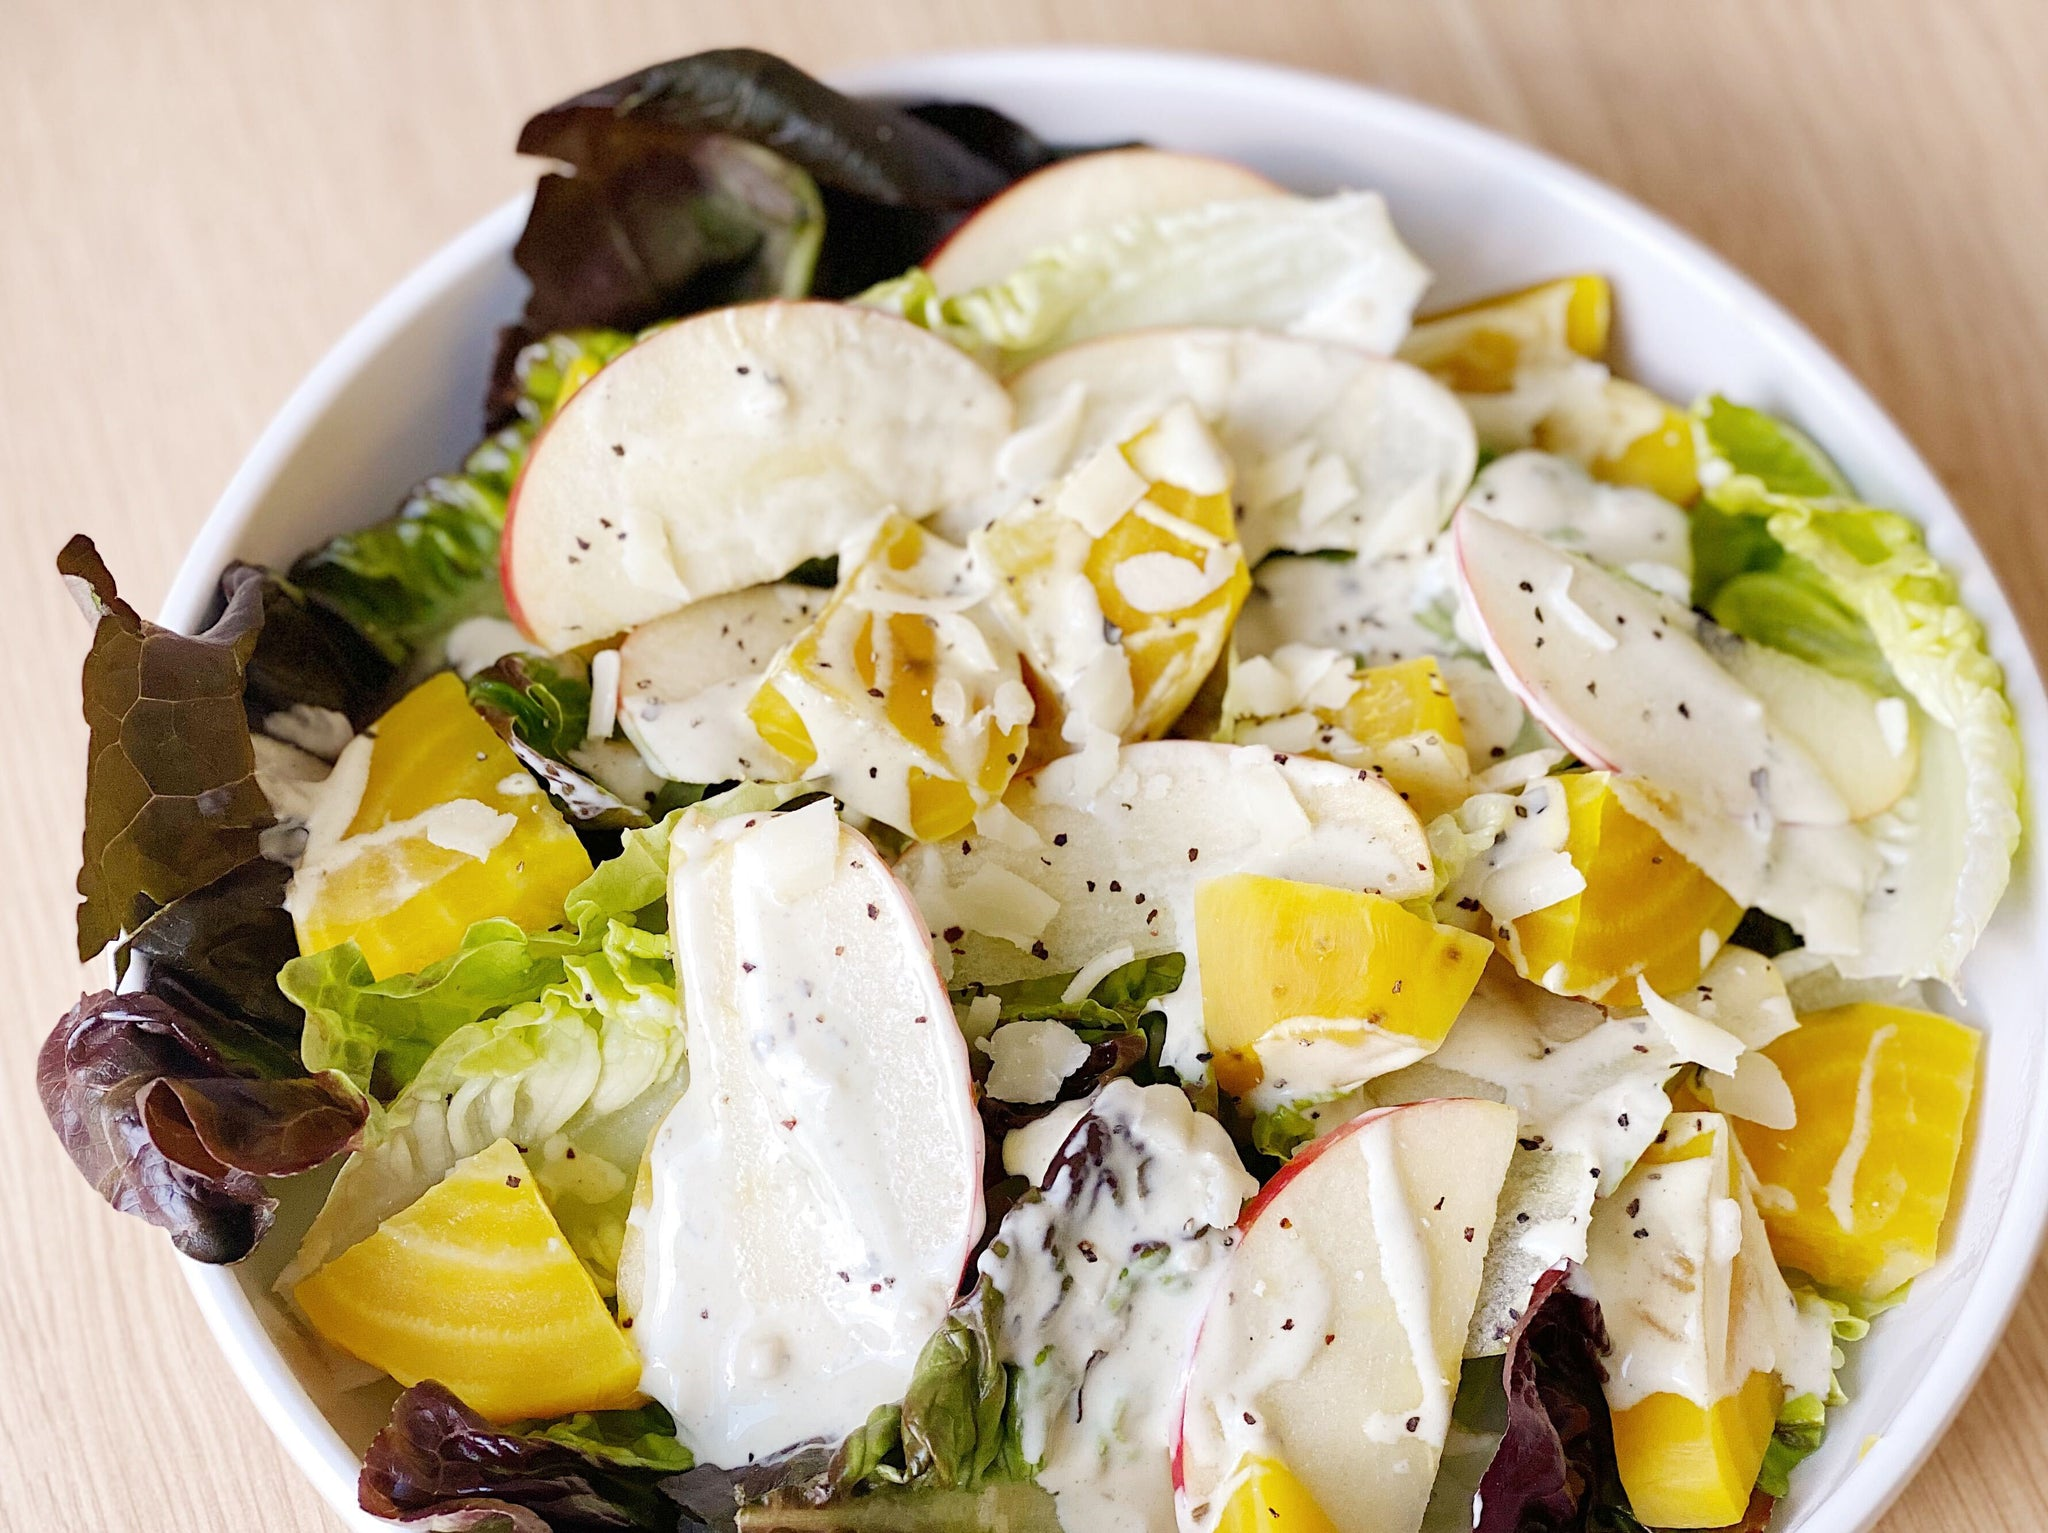 Summer Golden Beet Salad with Lemon White Balsamic Vinaigrette